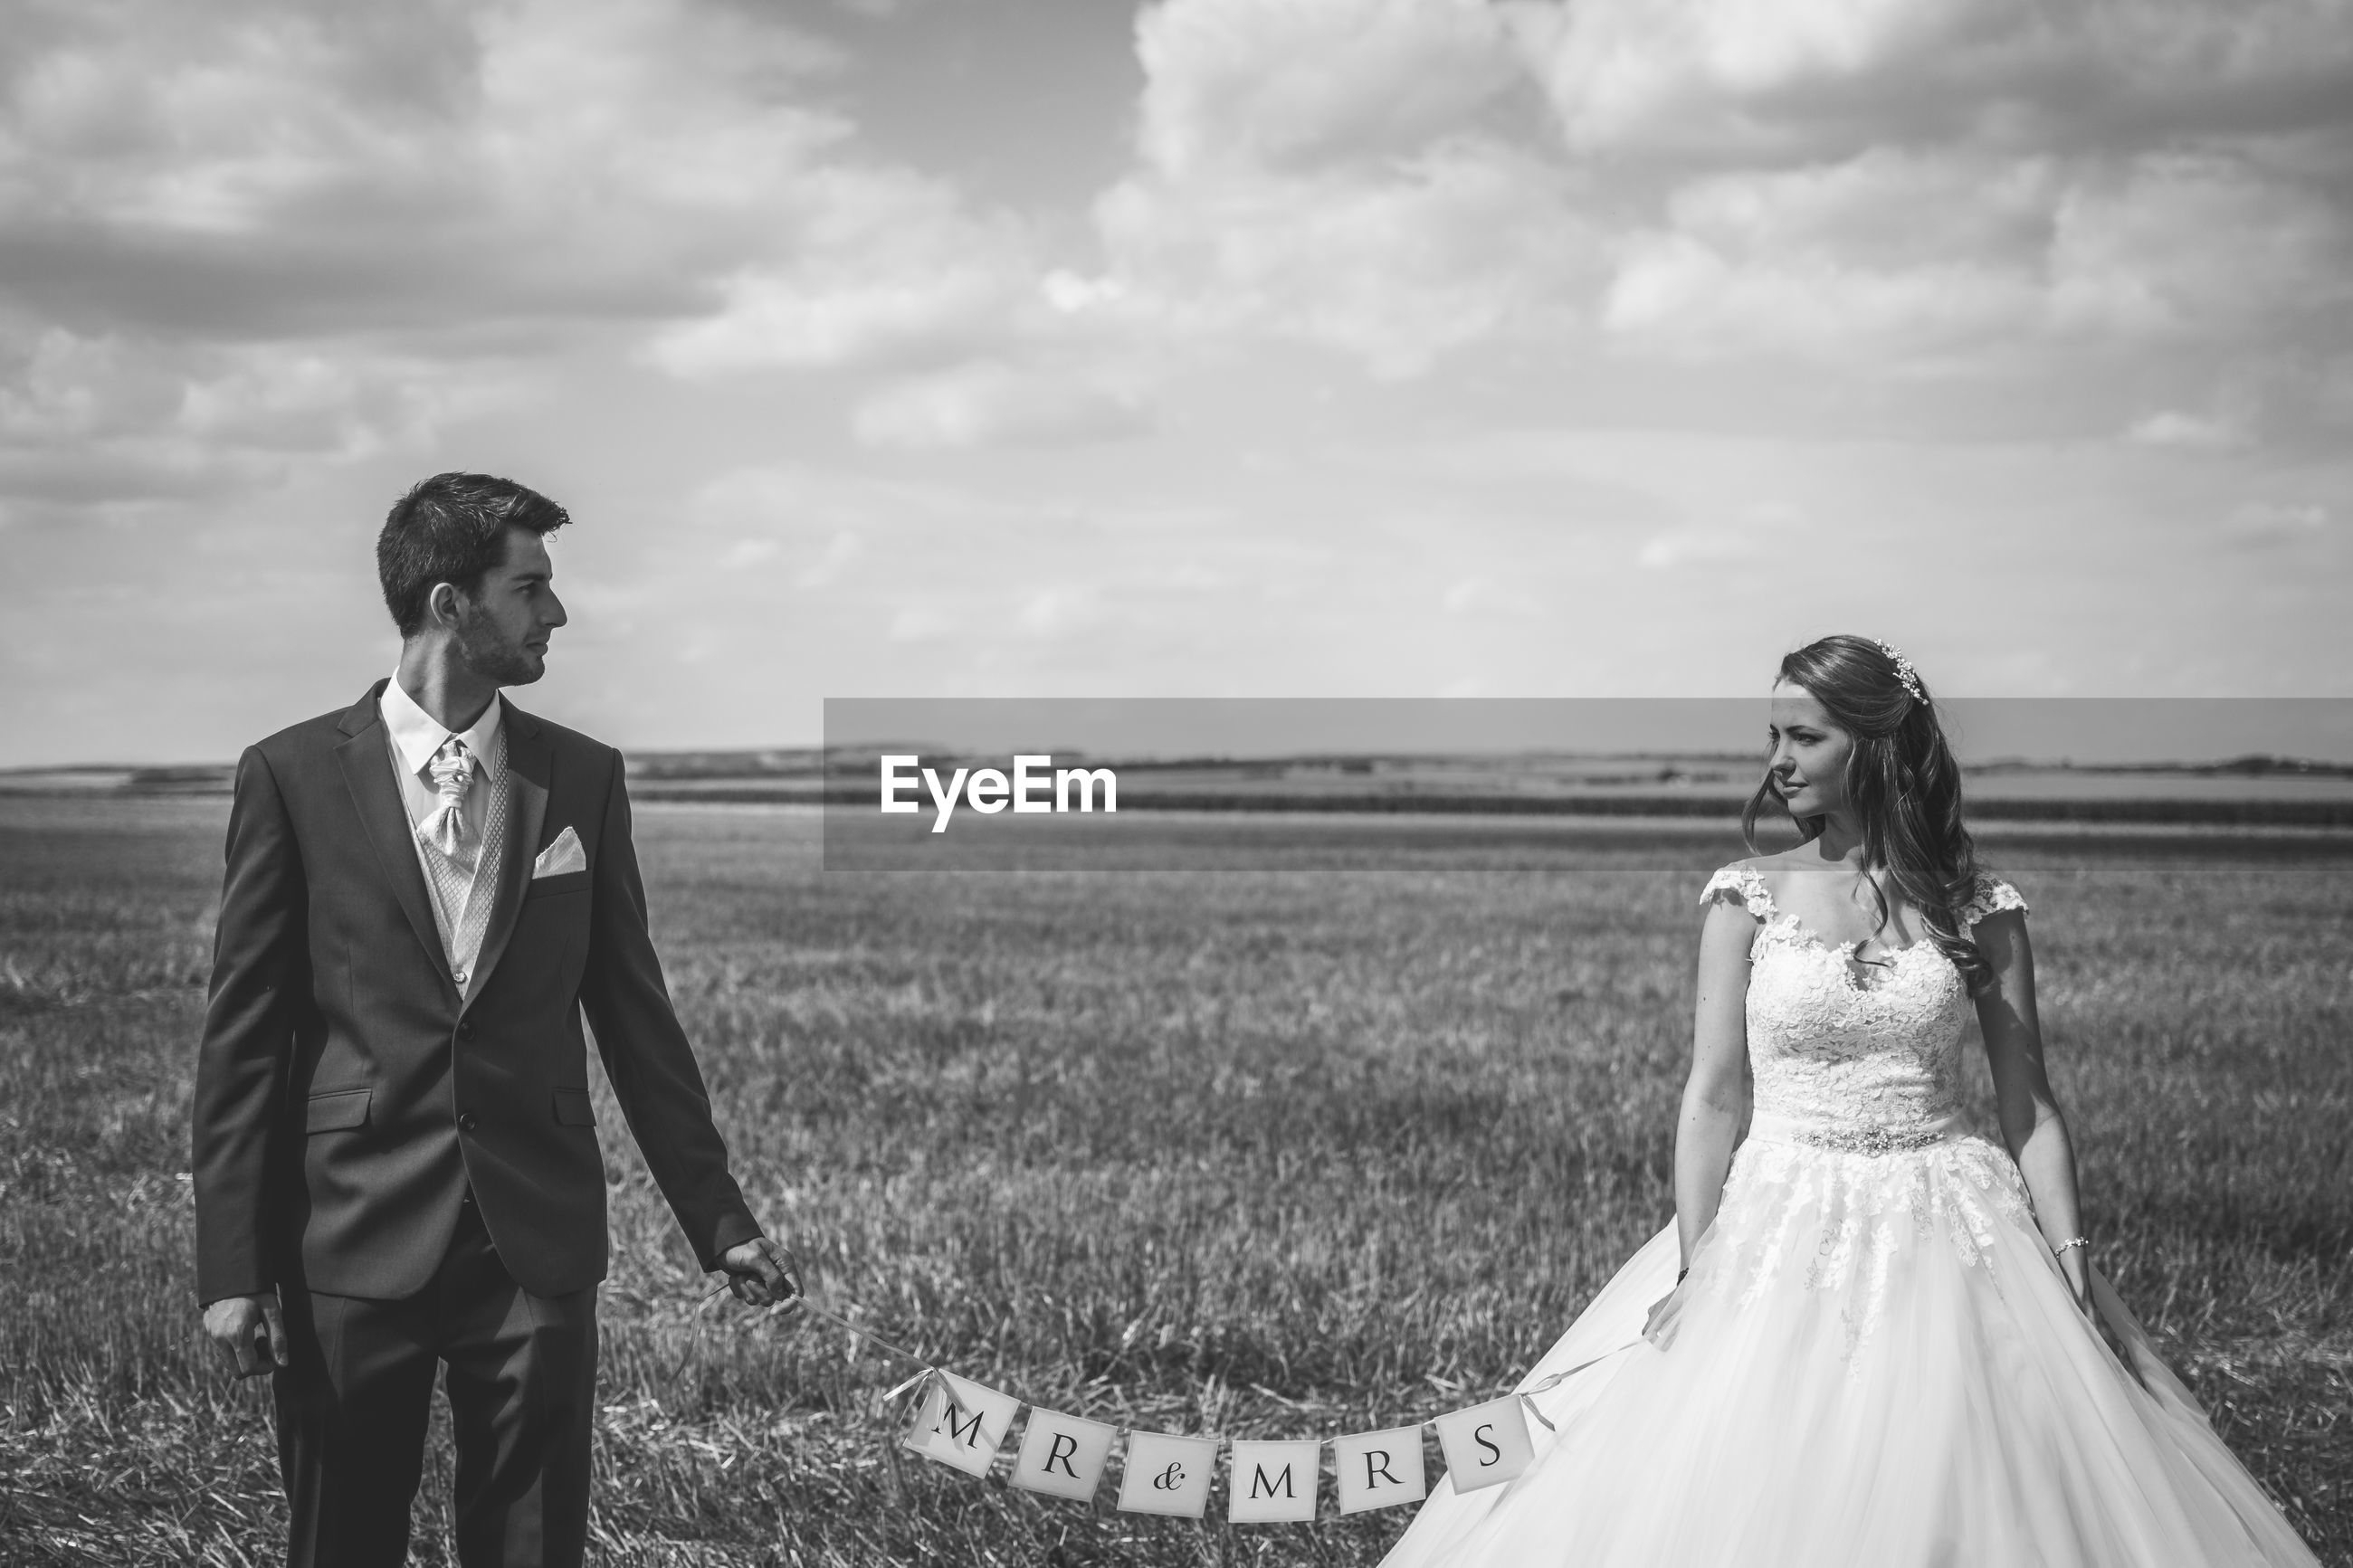 Couple standing together on a field on wedding day.